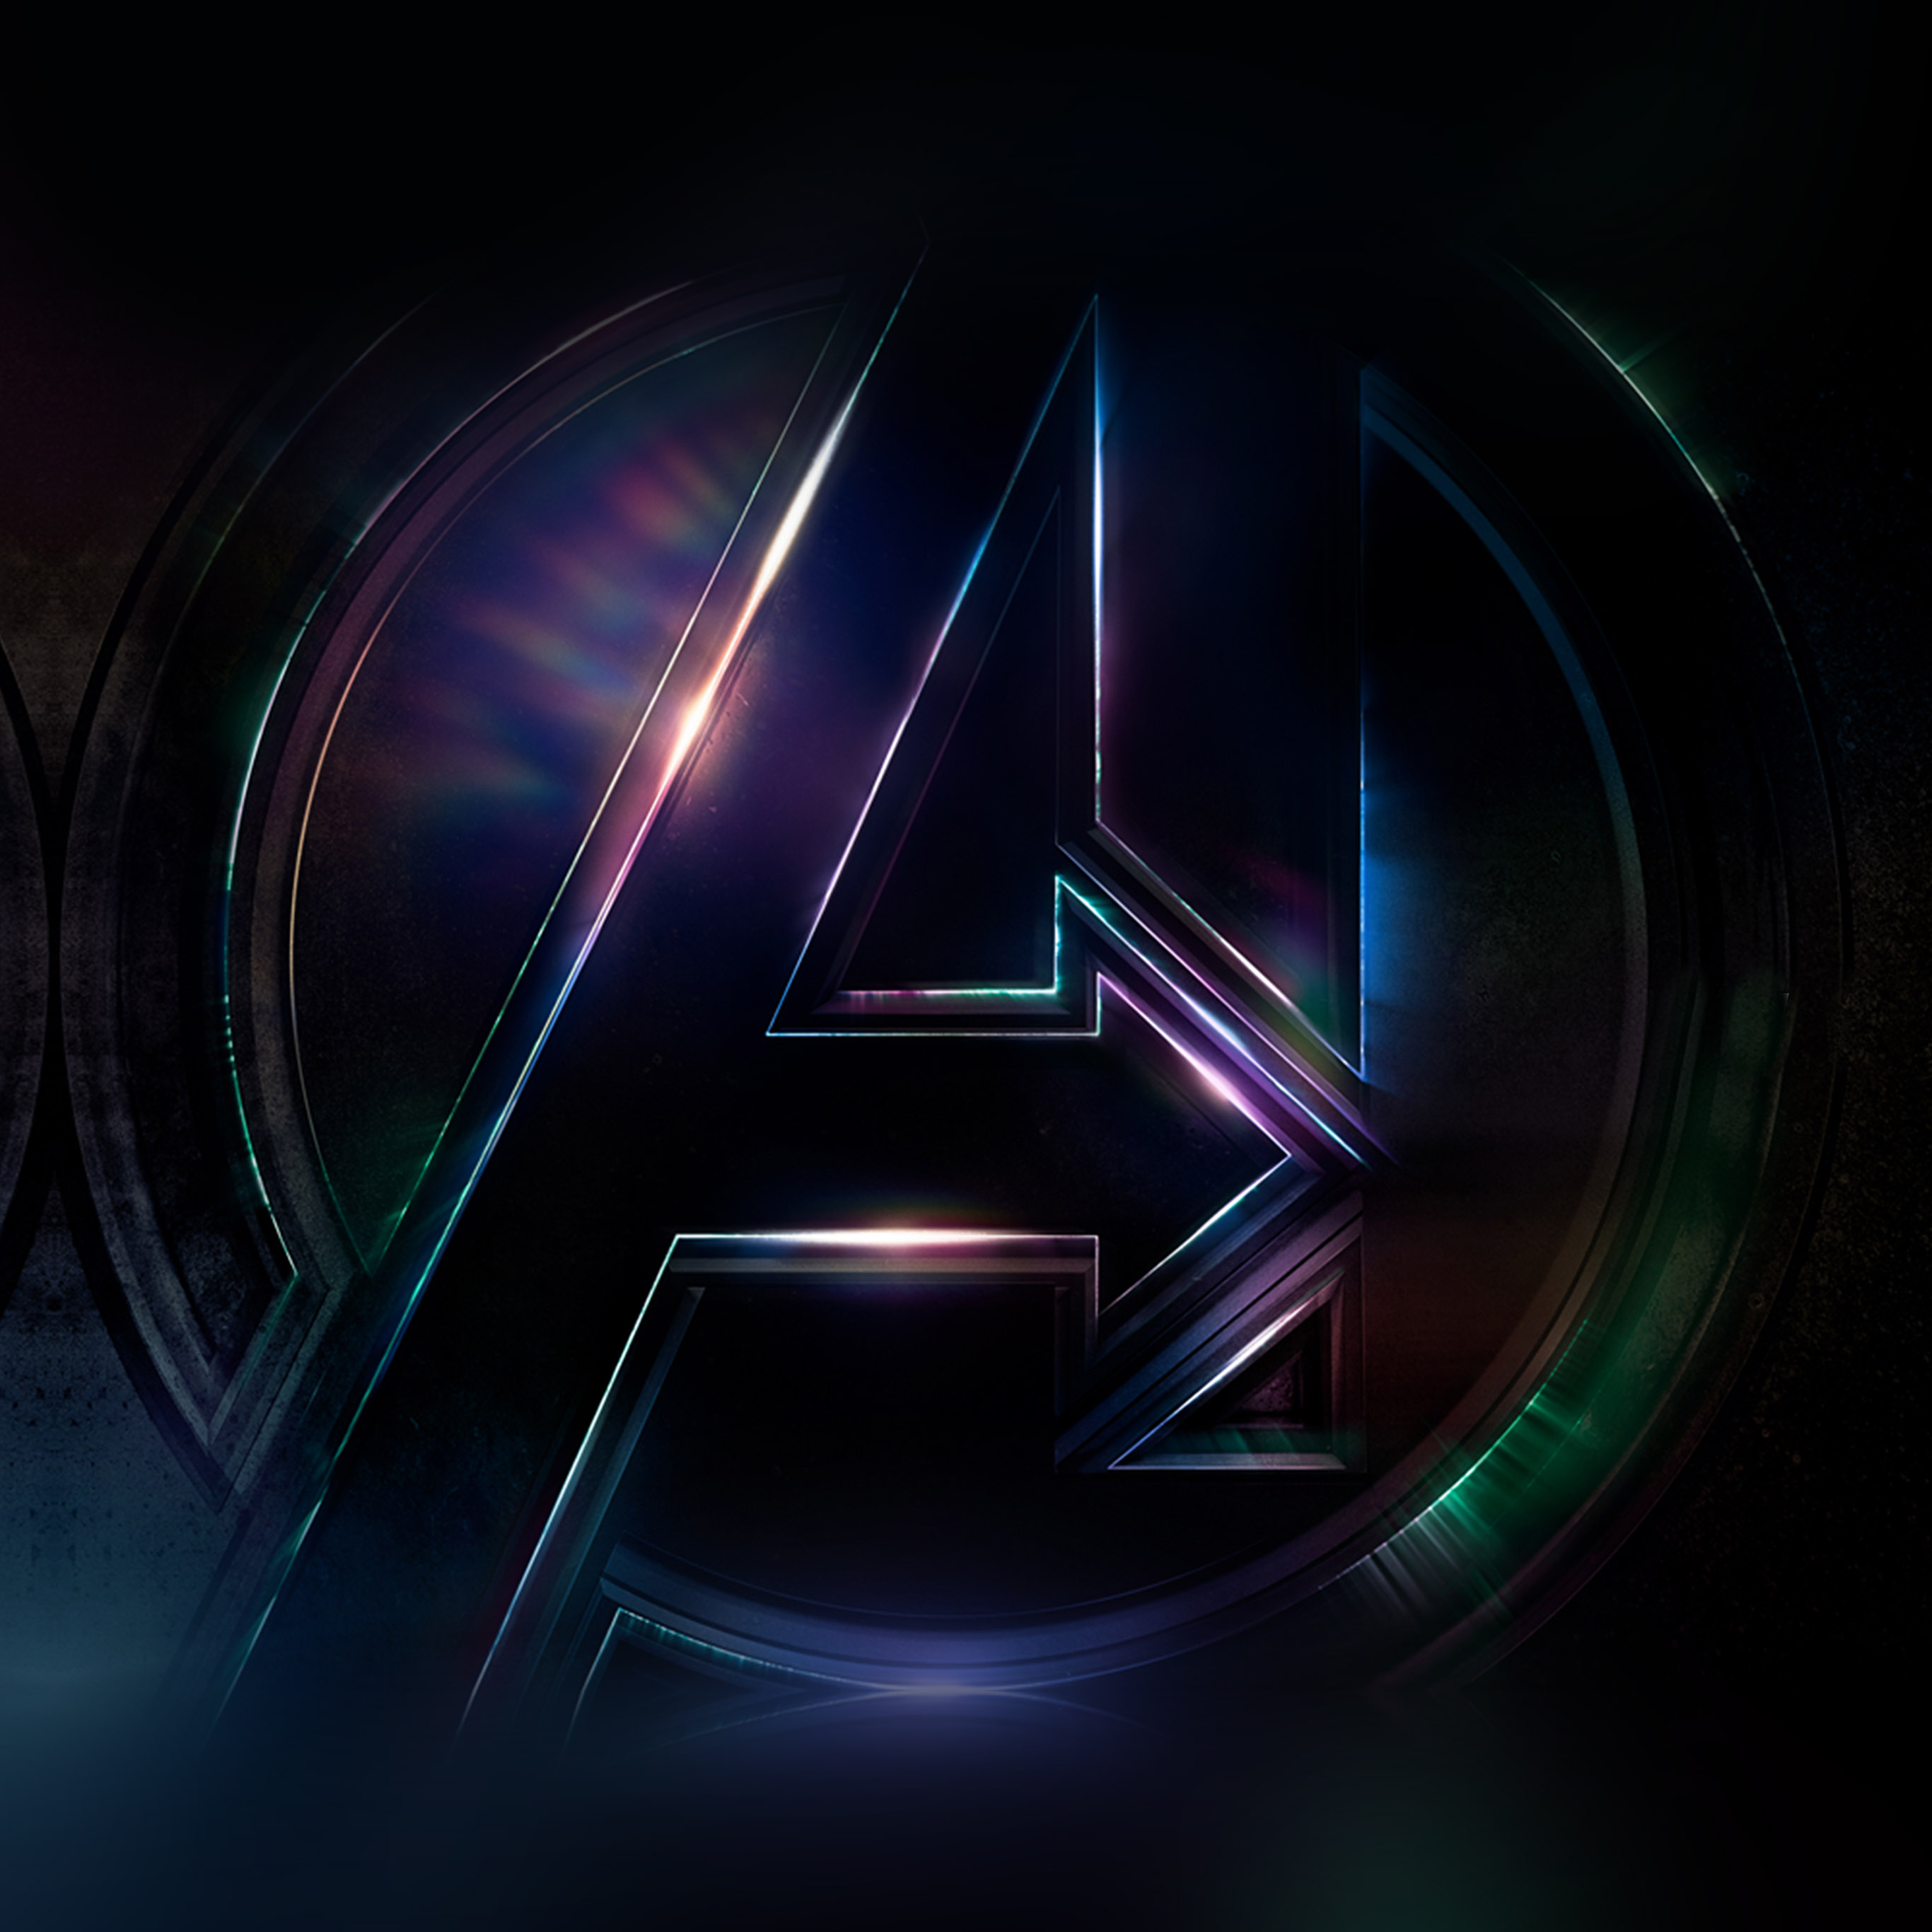 Galaxy S4 Fall Wallpaper Papers Co Android Wallpaper Be49 Avengers Logo Dark